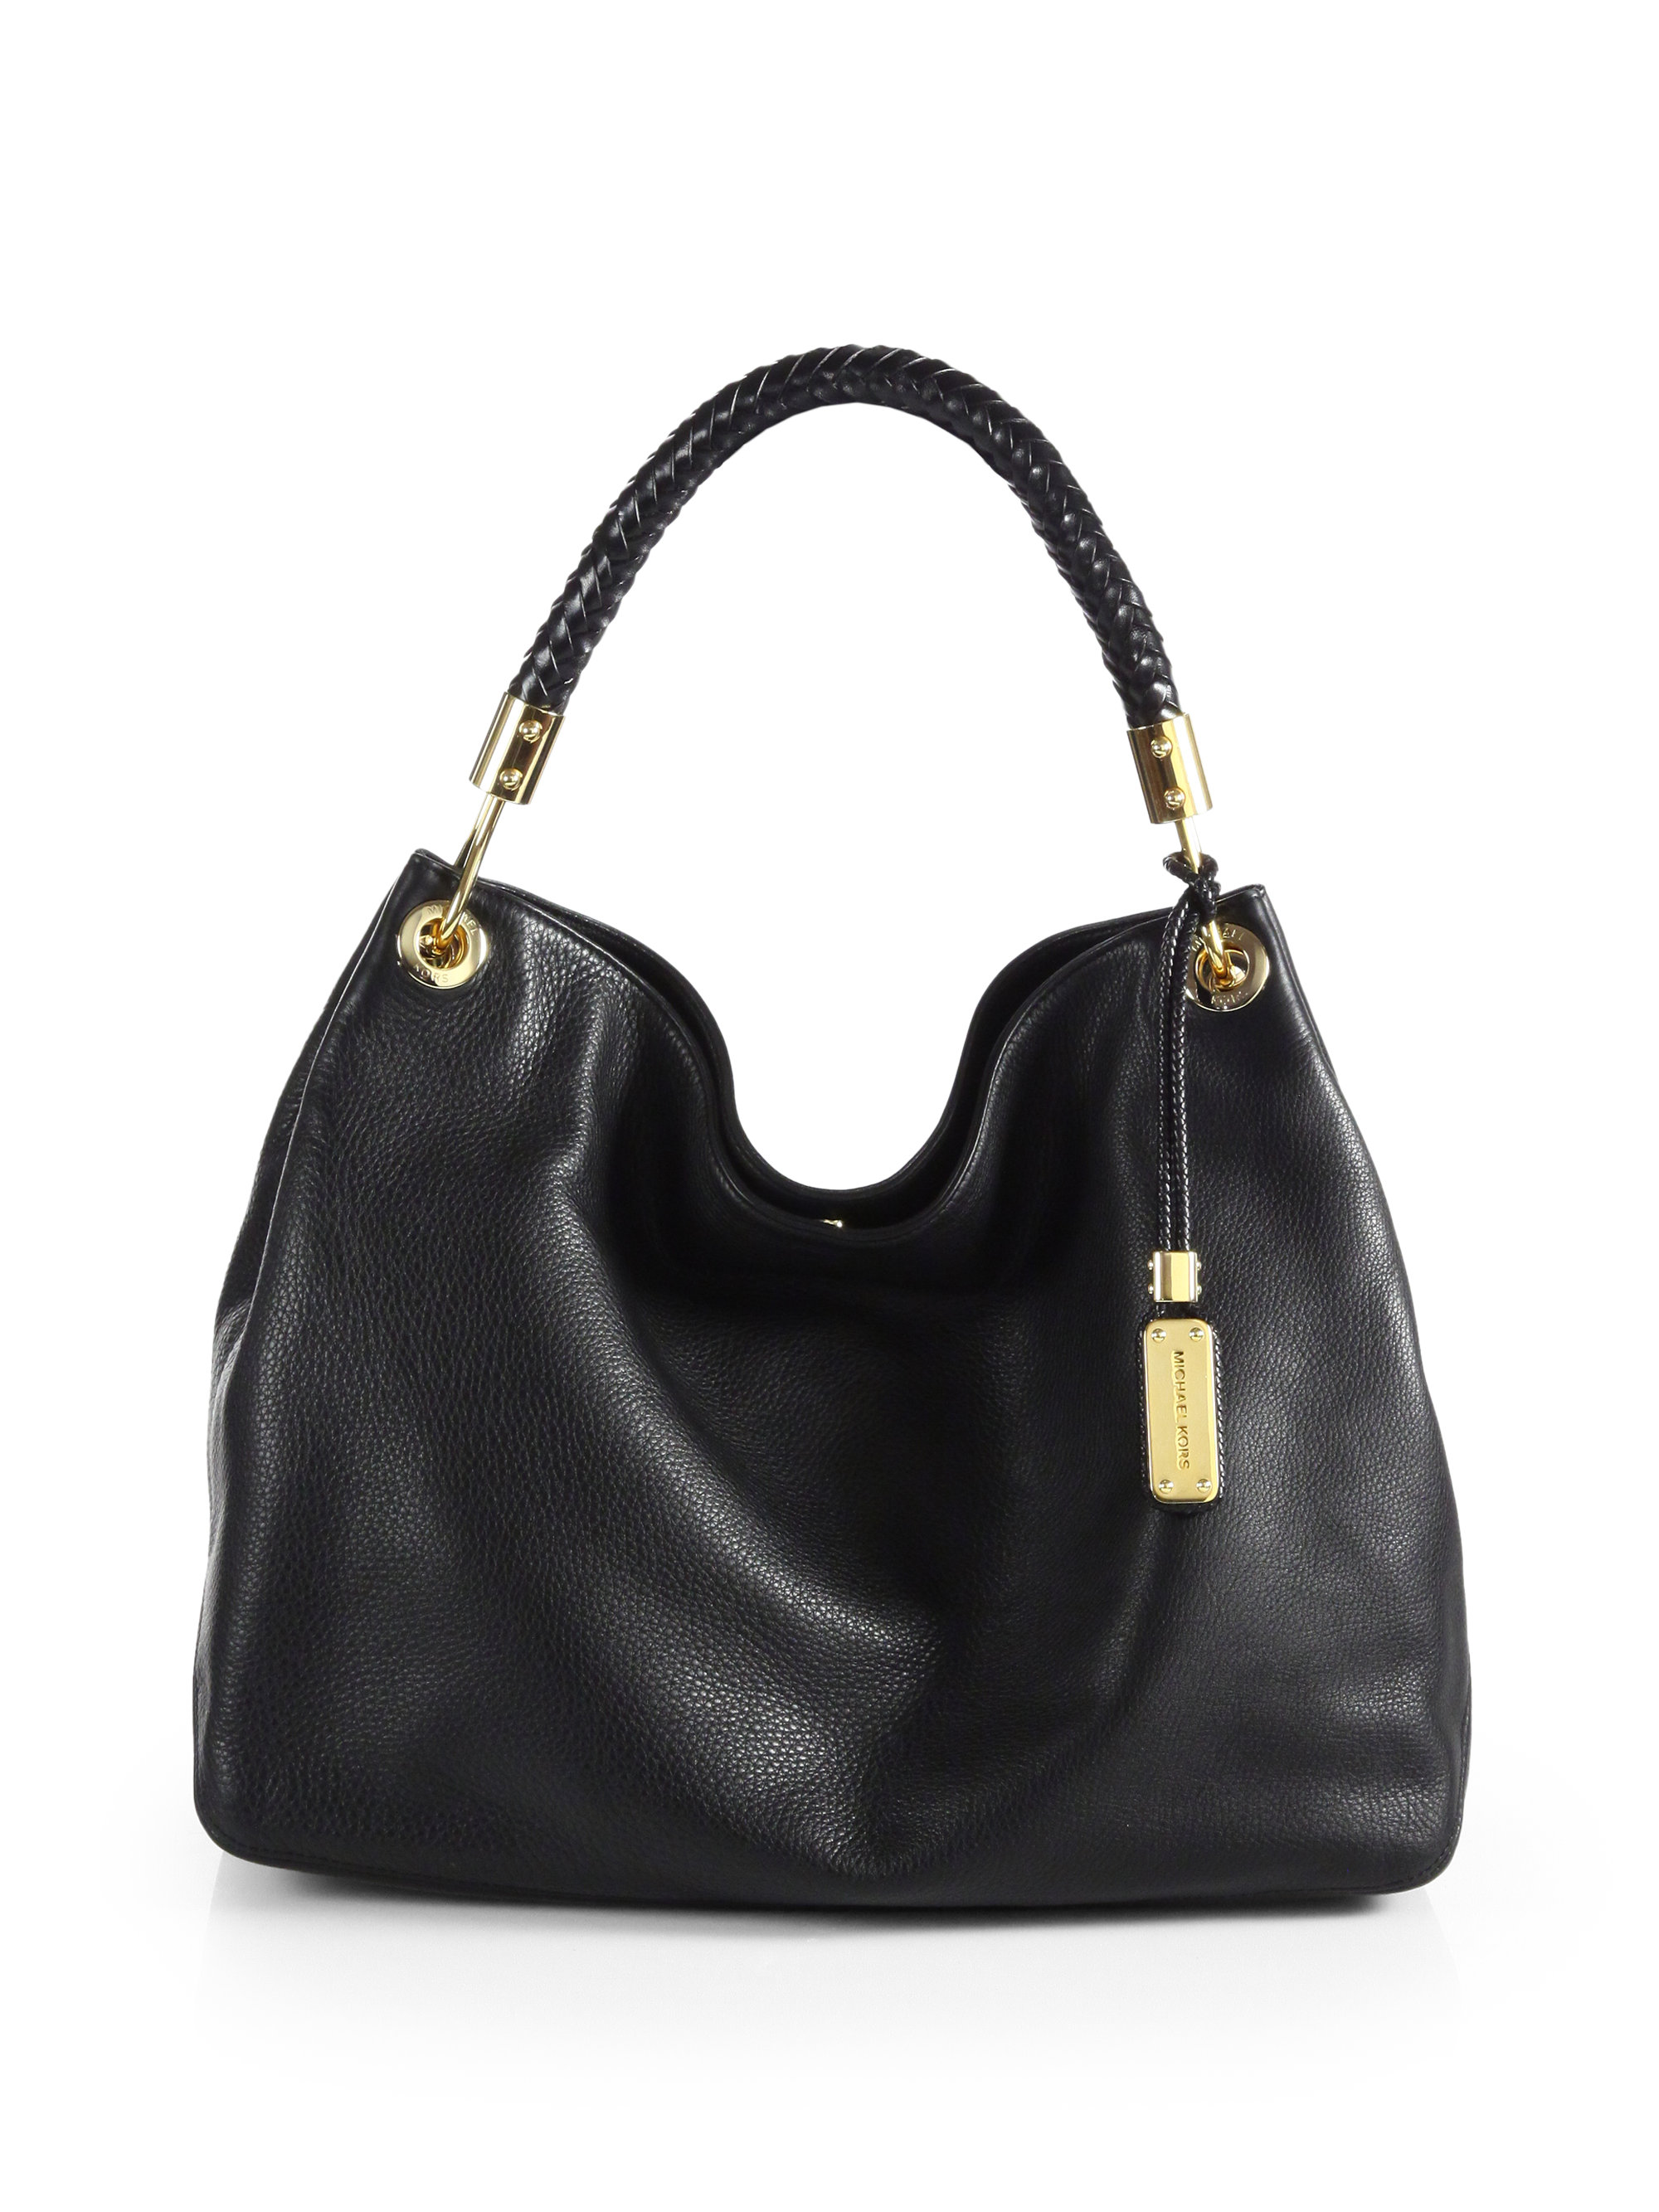 michael kors skorpios large hobo bag in black lyst. Black Bedroom Furniture Sets. Home Design Ideas